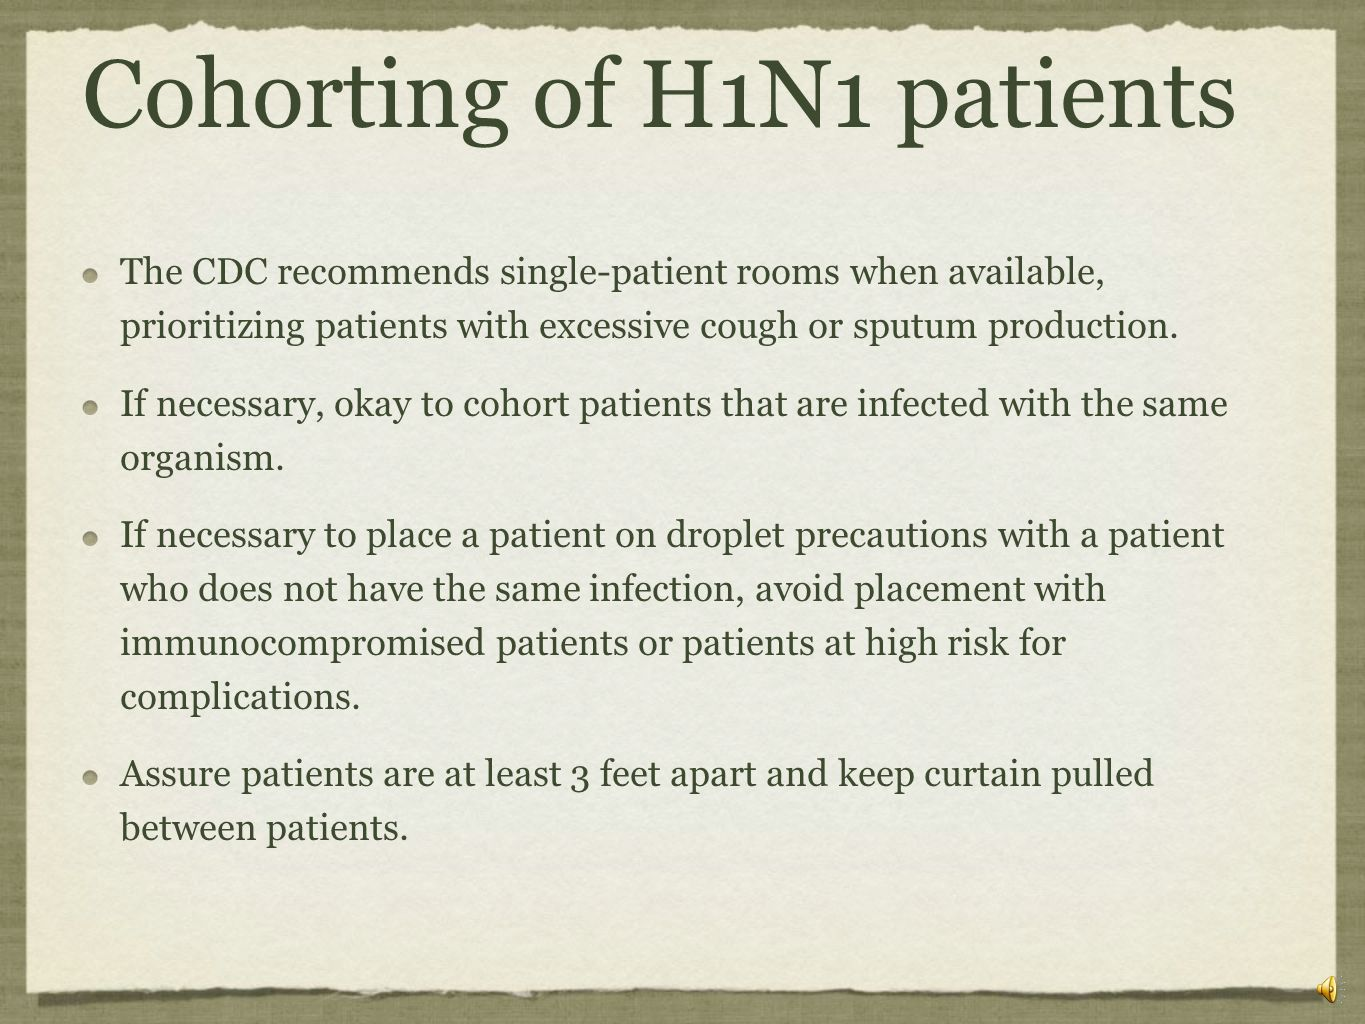 Cohorting of H1N1 patients